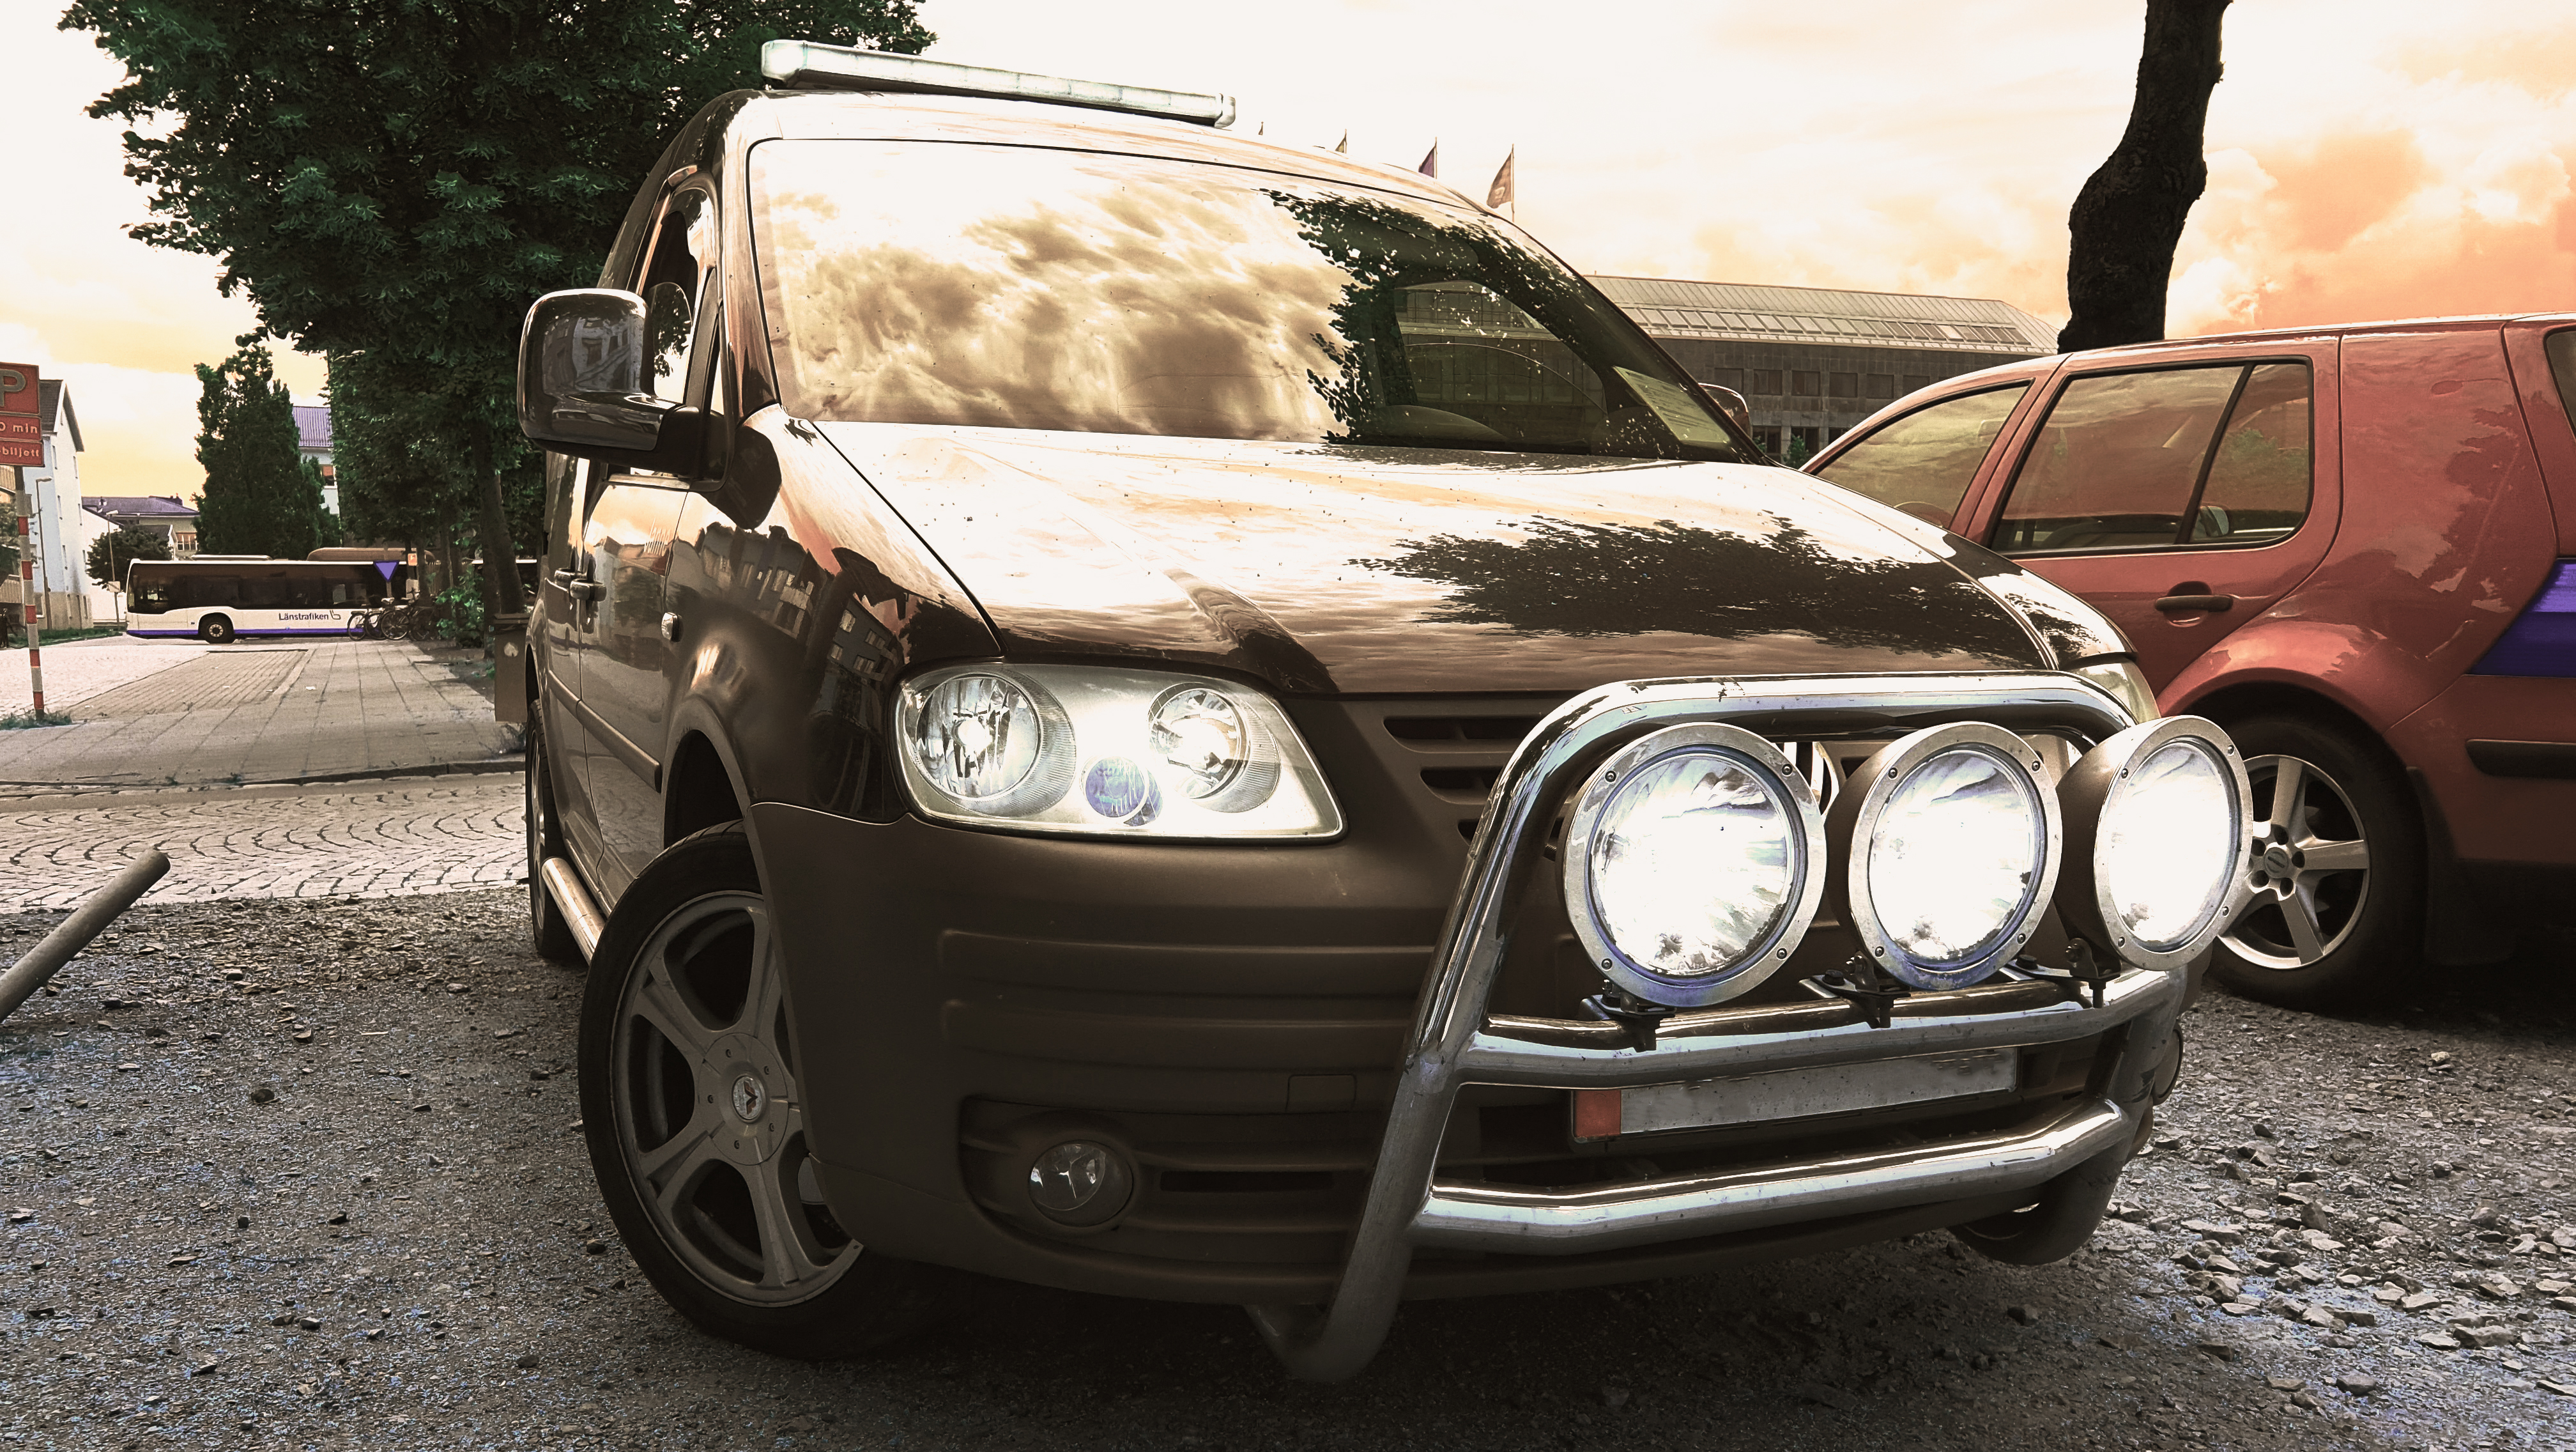 VW caddy stylad light effects